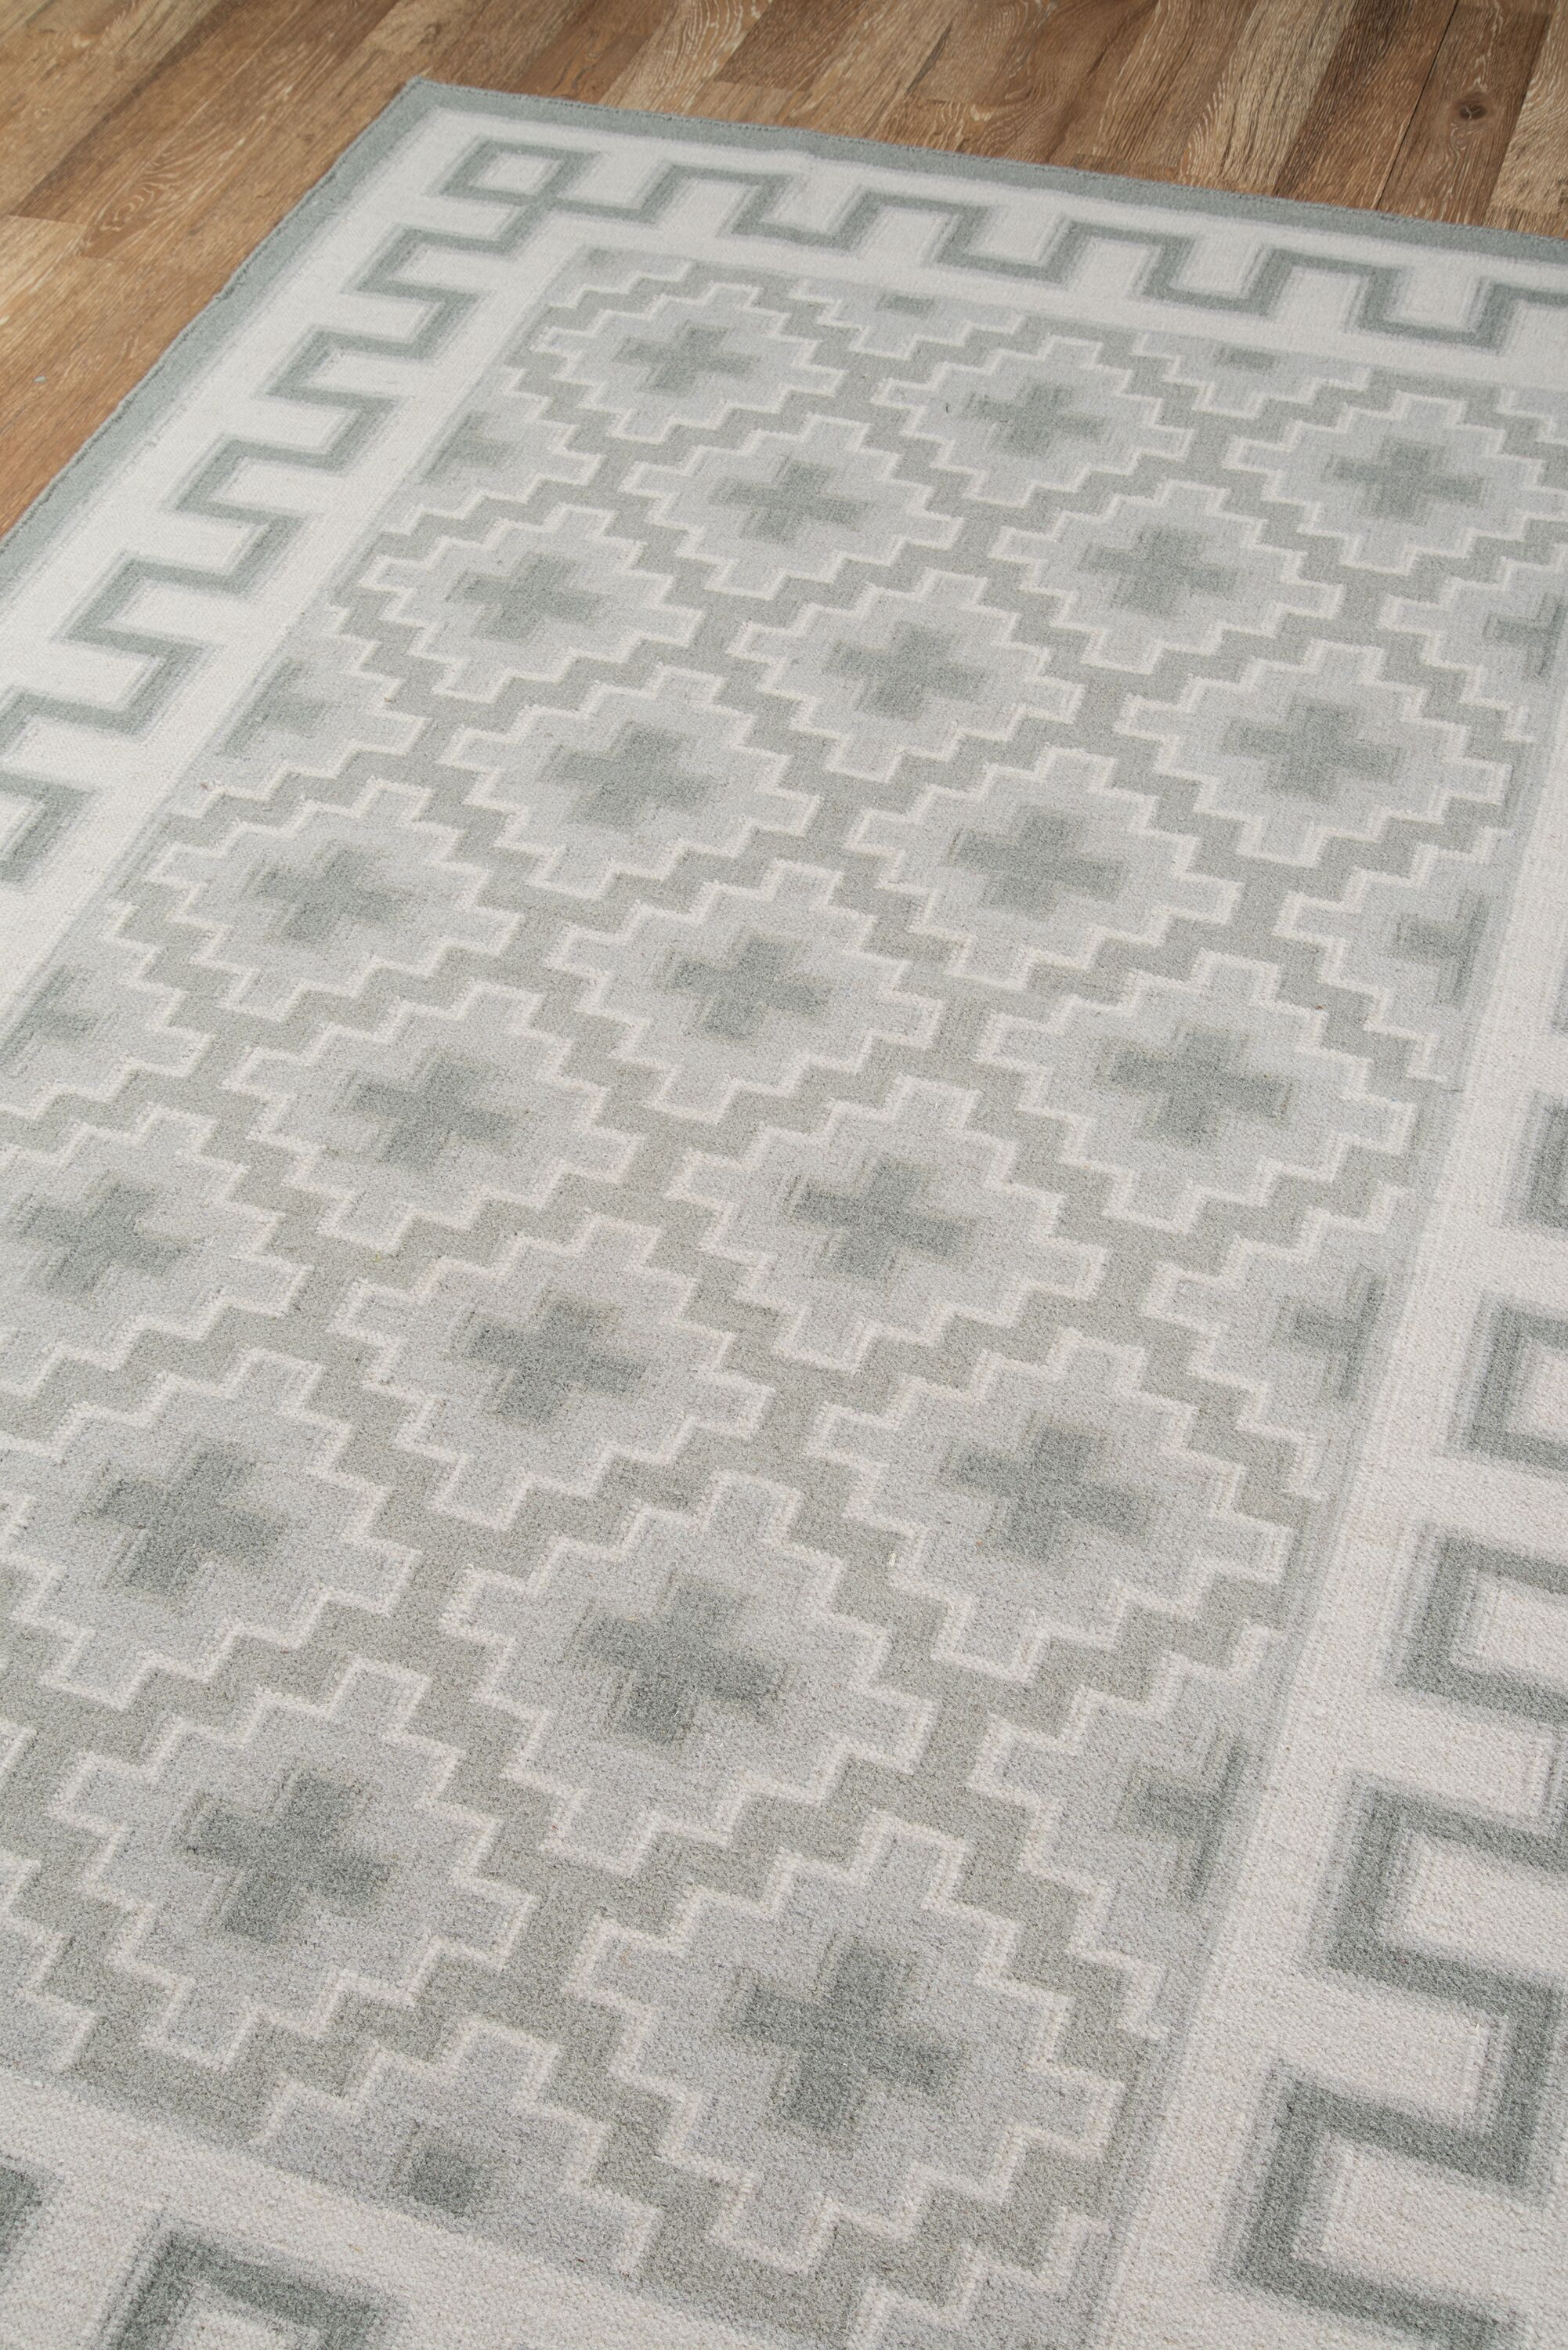 Thompson Brookline Hand-Woven Wool Grey Area Rug Rug Size: Rectangle 3'6